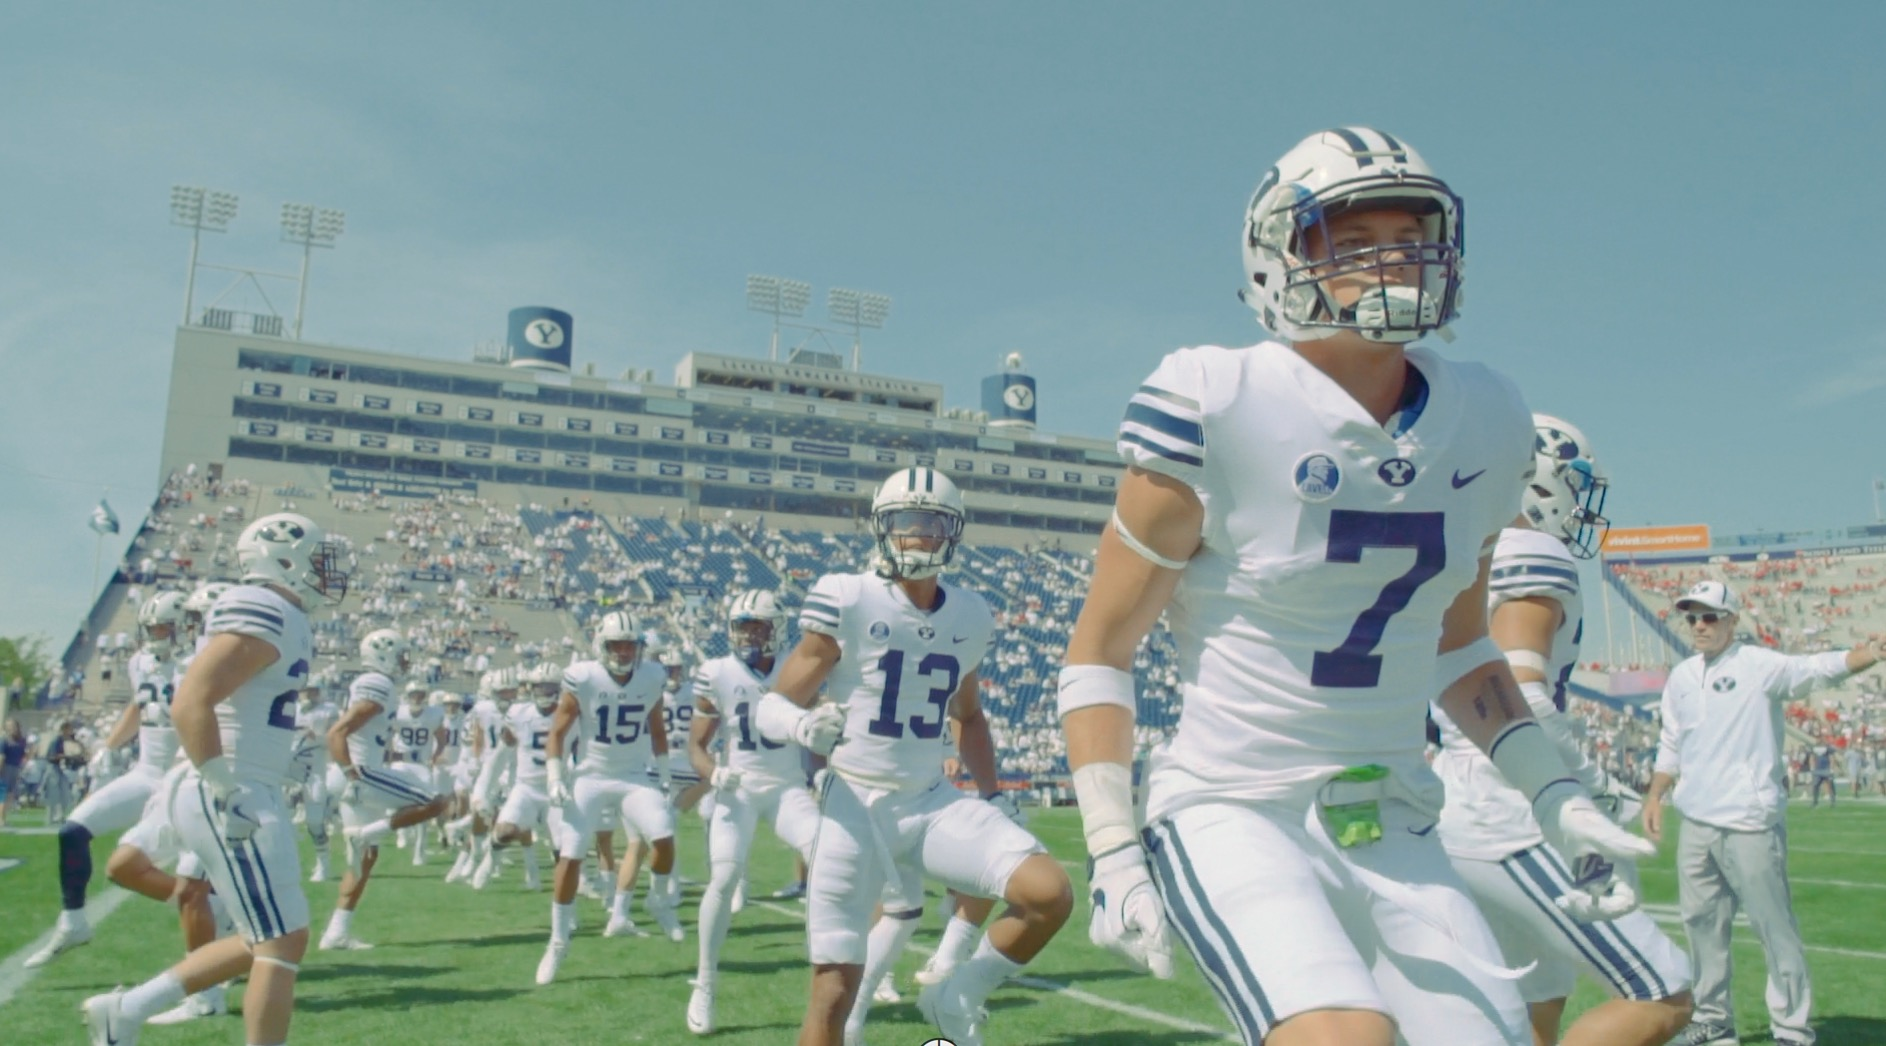 BYU warms up at LaVell Edwards Stadium